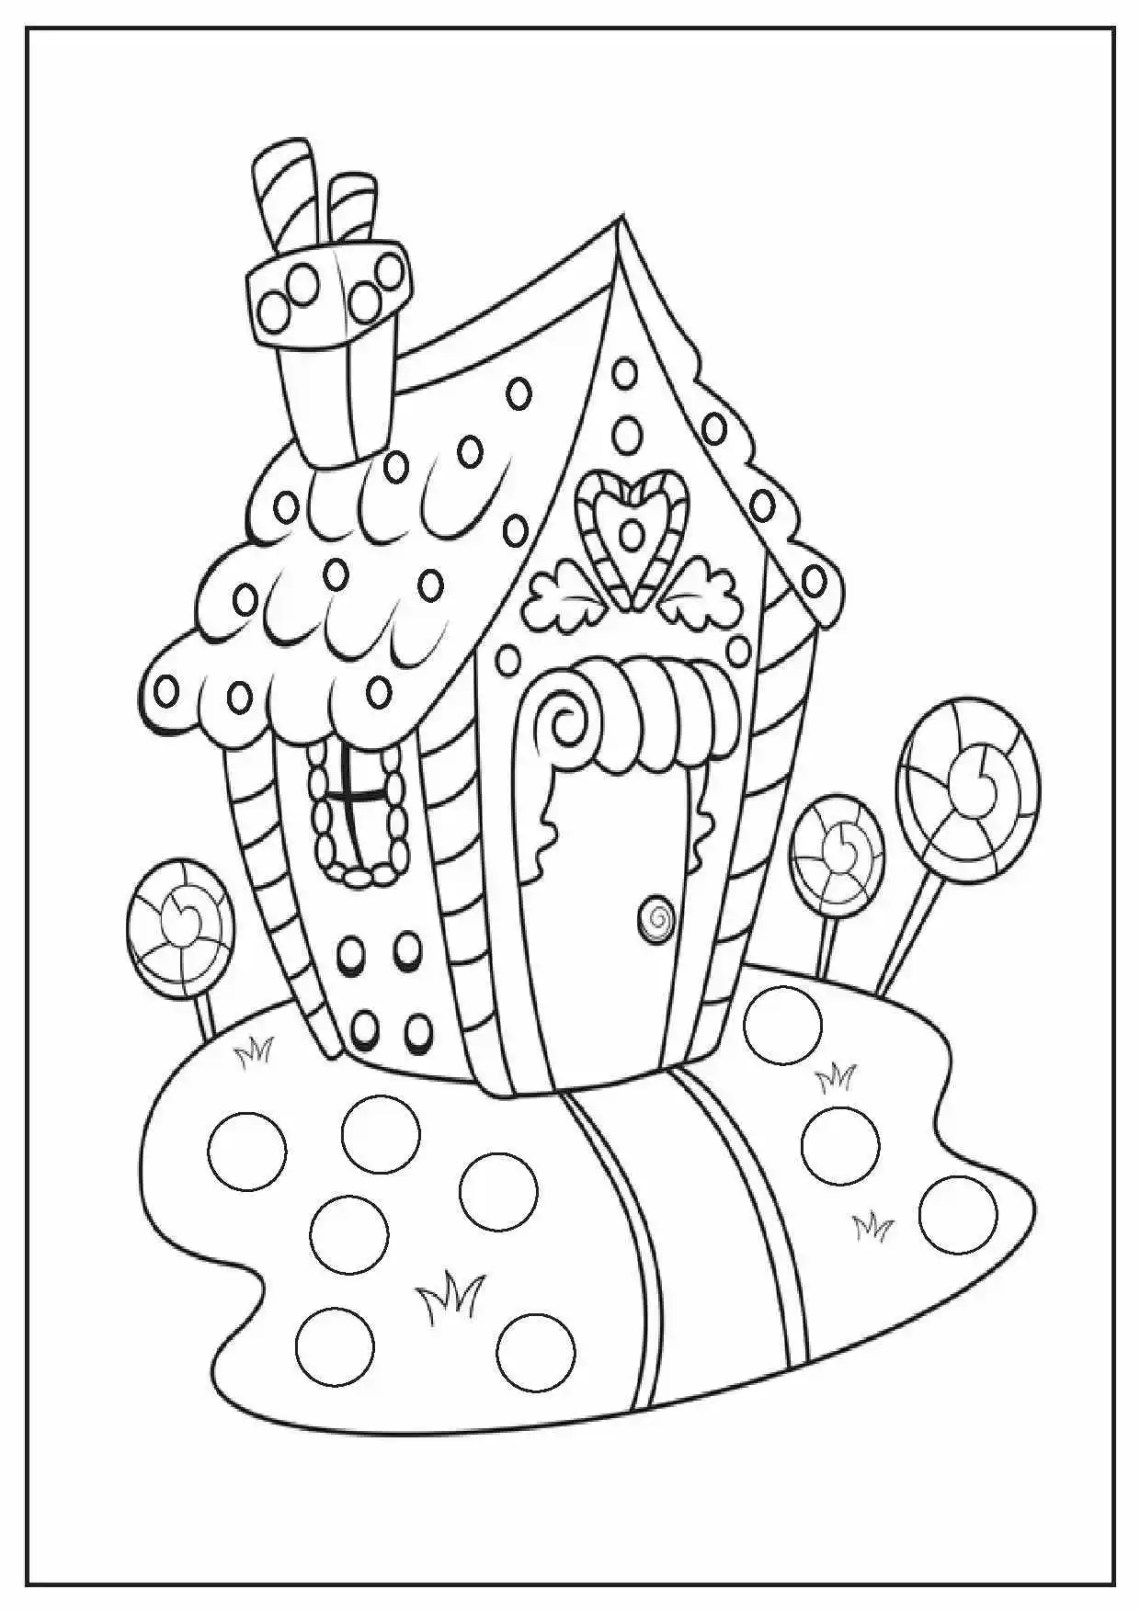 Full Page Christmas Coloring Pages at GetColorings.com ... | free full size printable christmas coloring pages for adults